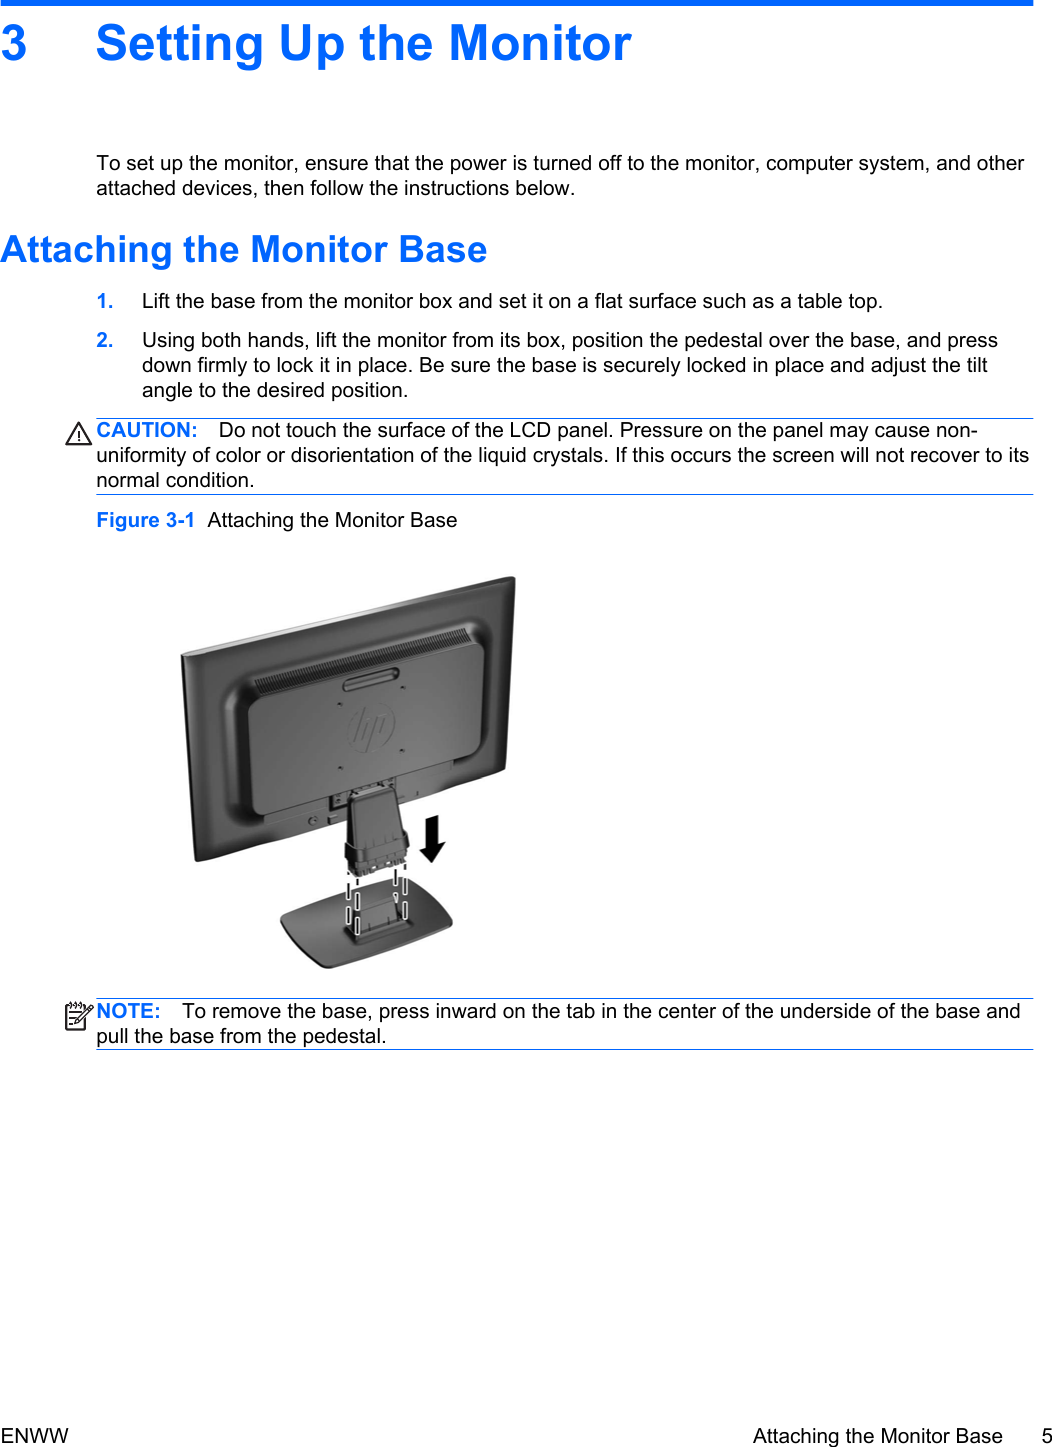 How To Remove Osd Lockout From Compaq Monitor idea gallery